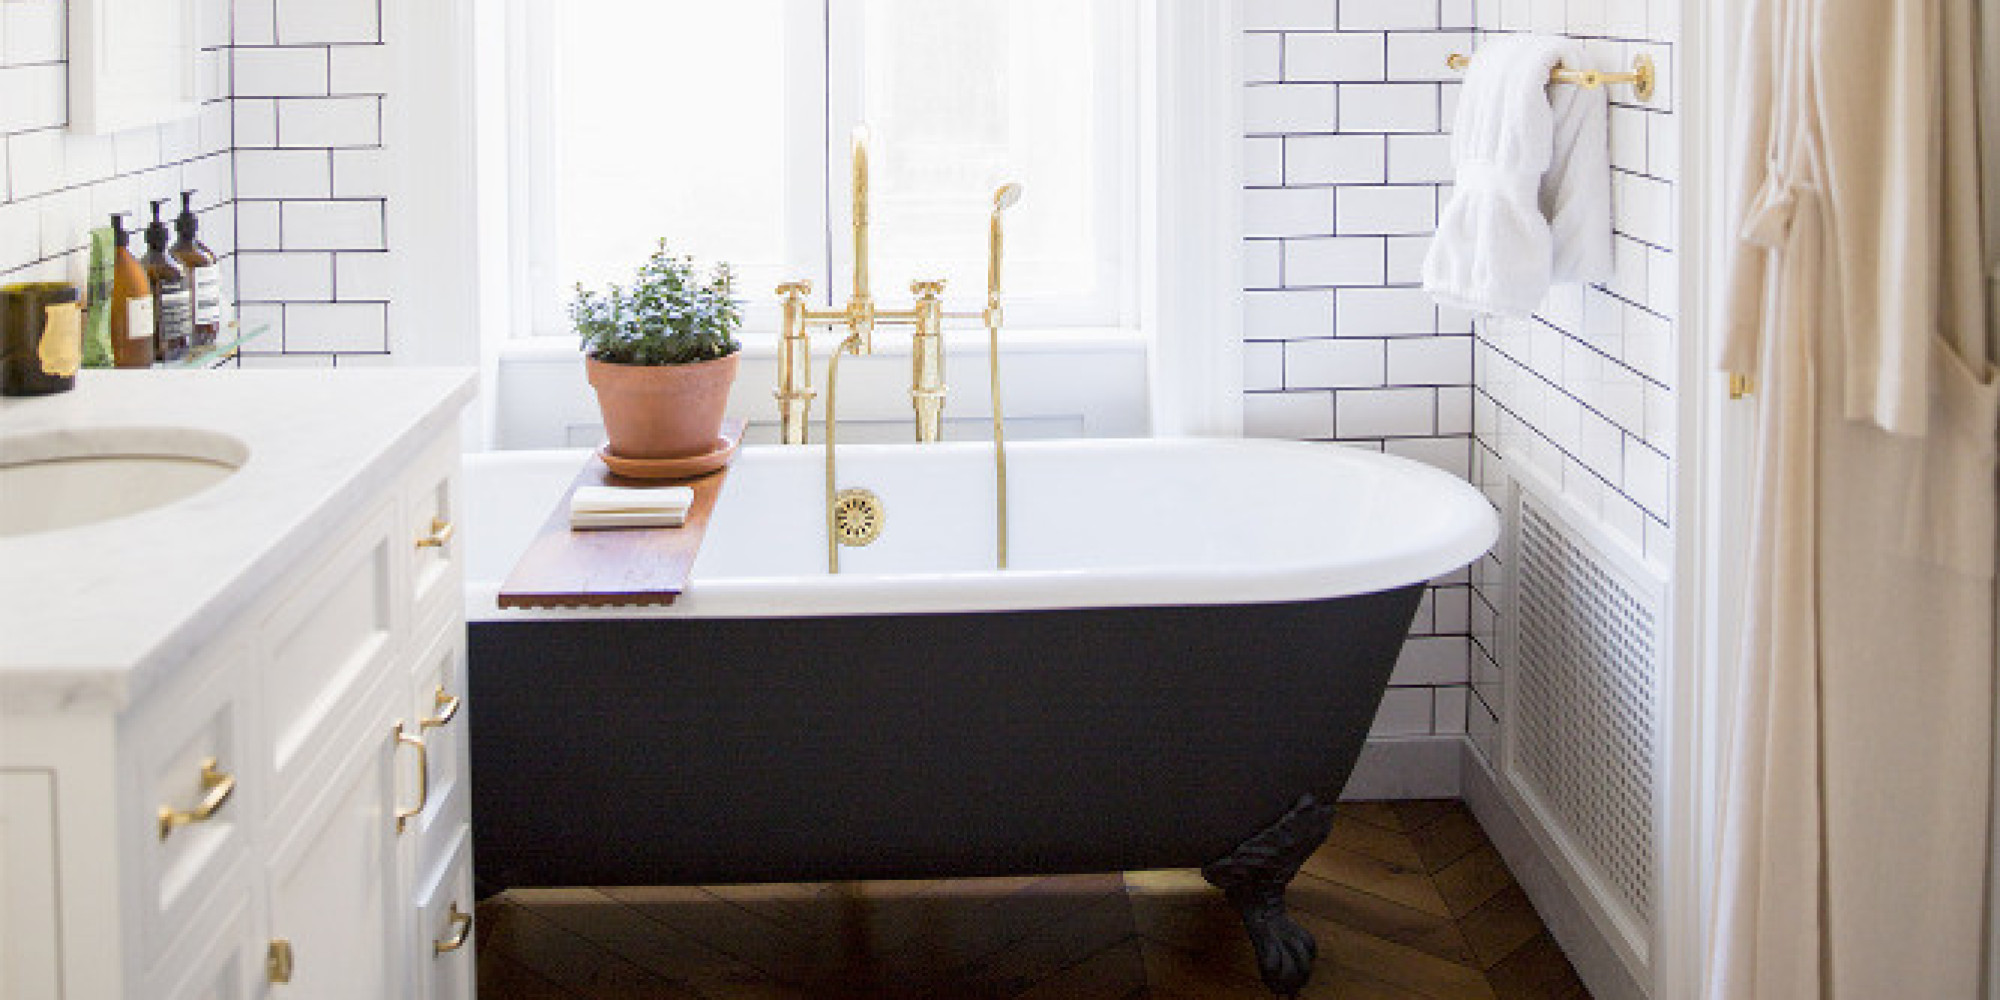 The 6 Biggest Bathroom Trends Of 2015 Are What We've Been Waiting For |  HuffPost